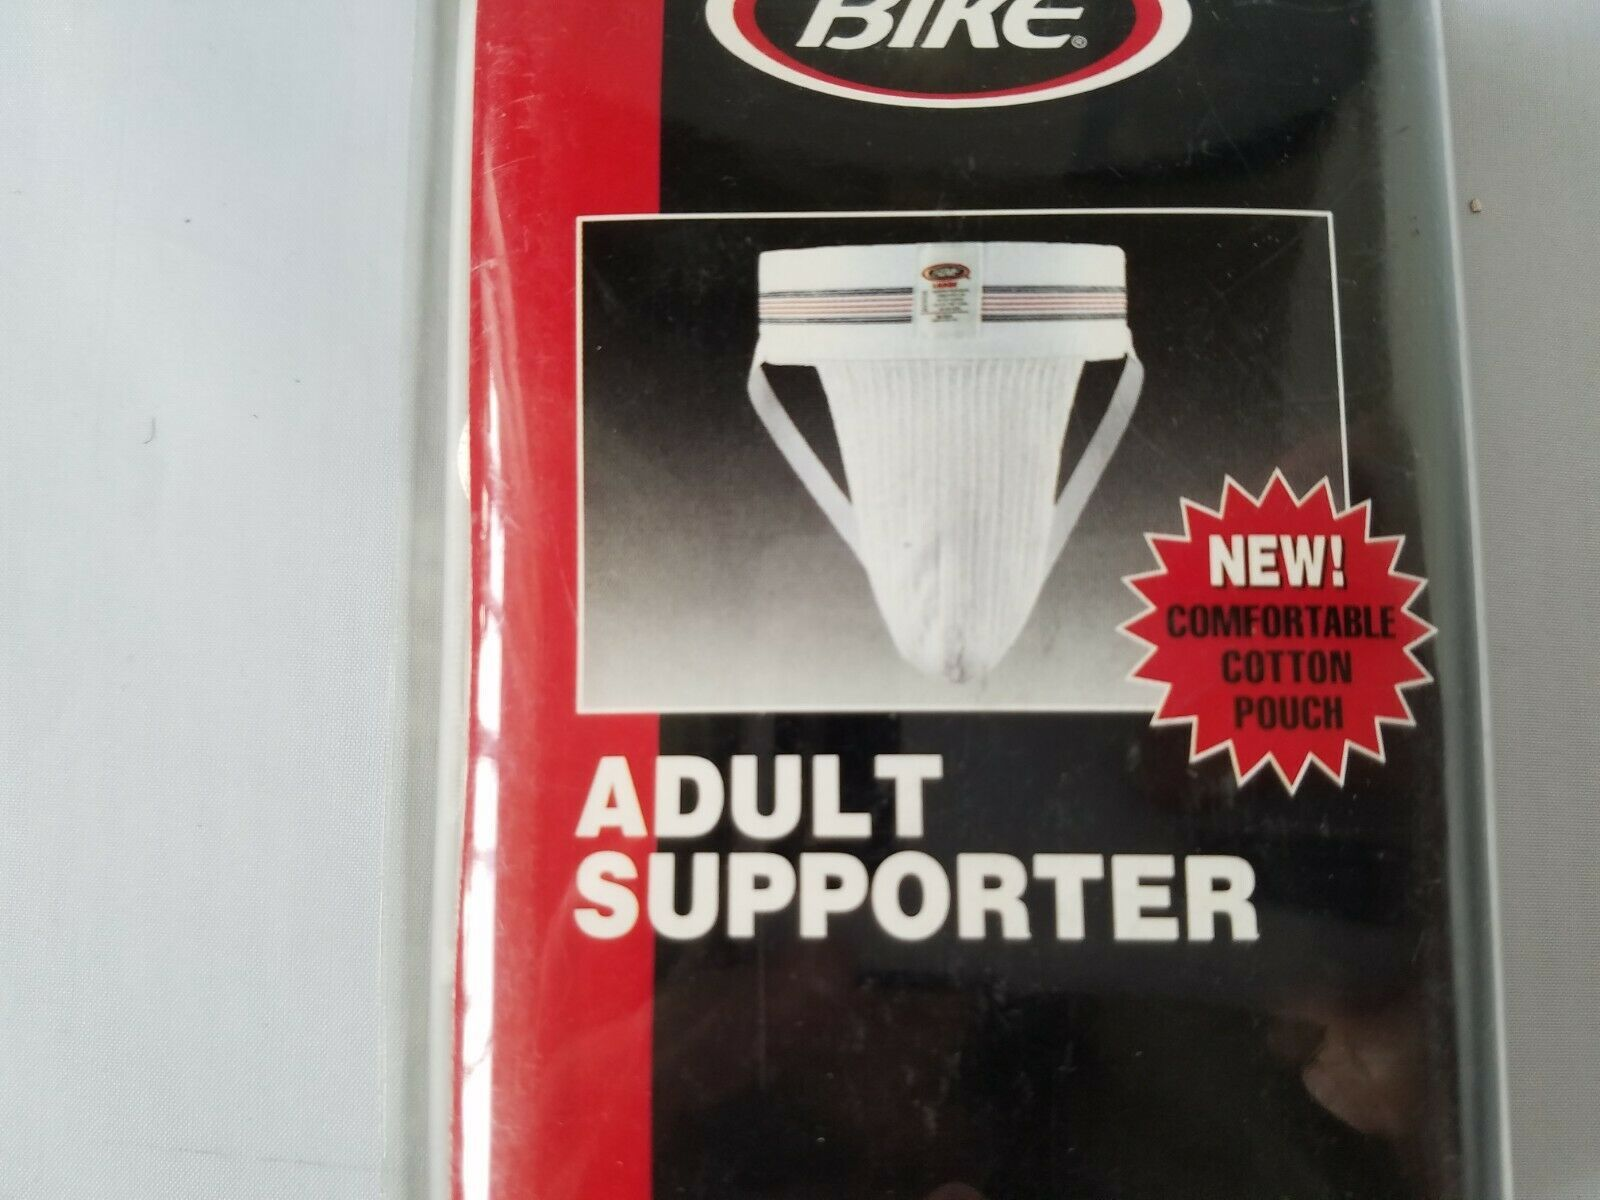 Adult Supporter Bike Athletic Company Vintage Comfortable Cotton Pouch S image 2